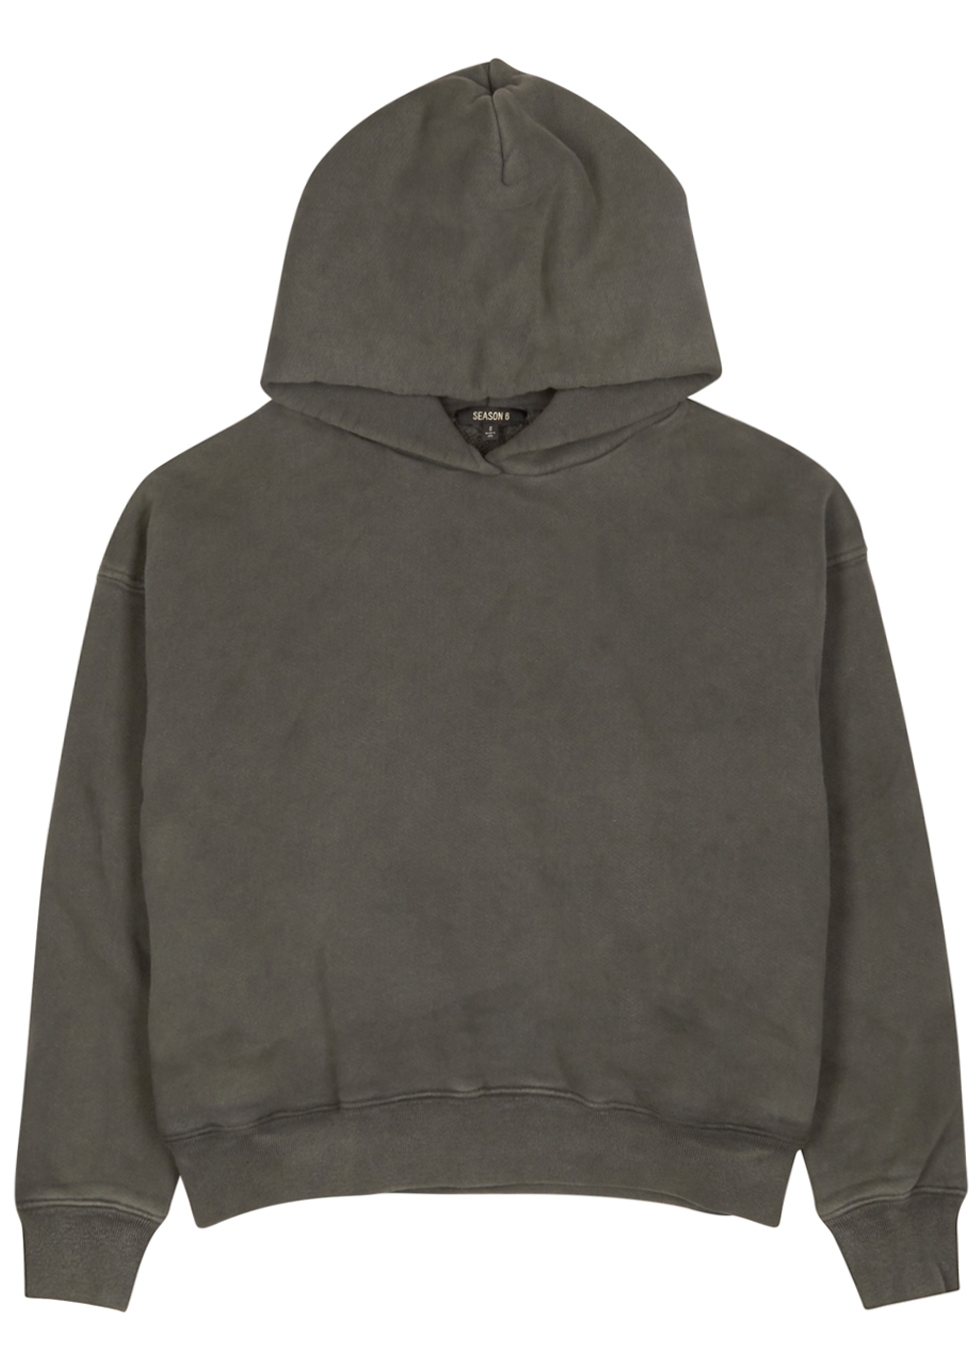 STORM GREY COTTON SWEATSHIRT